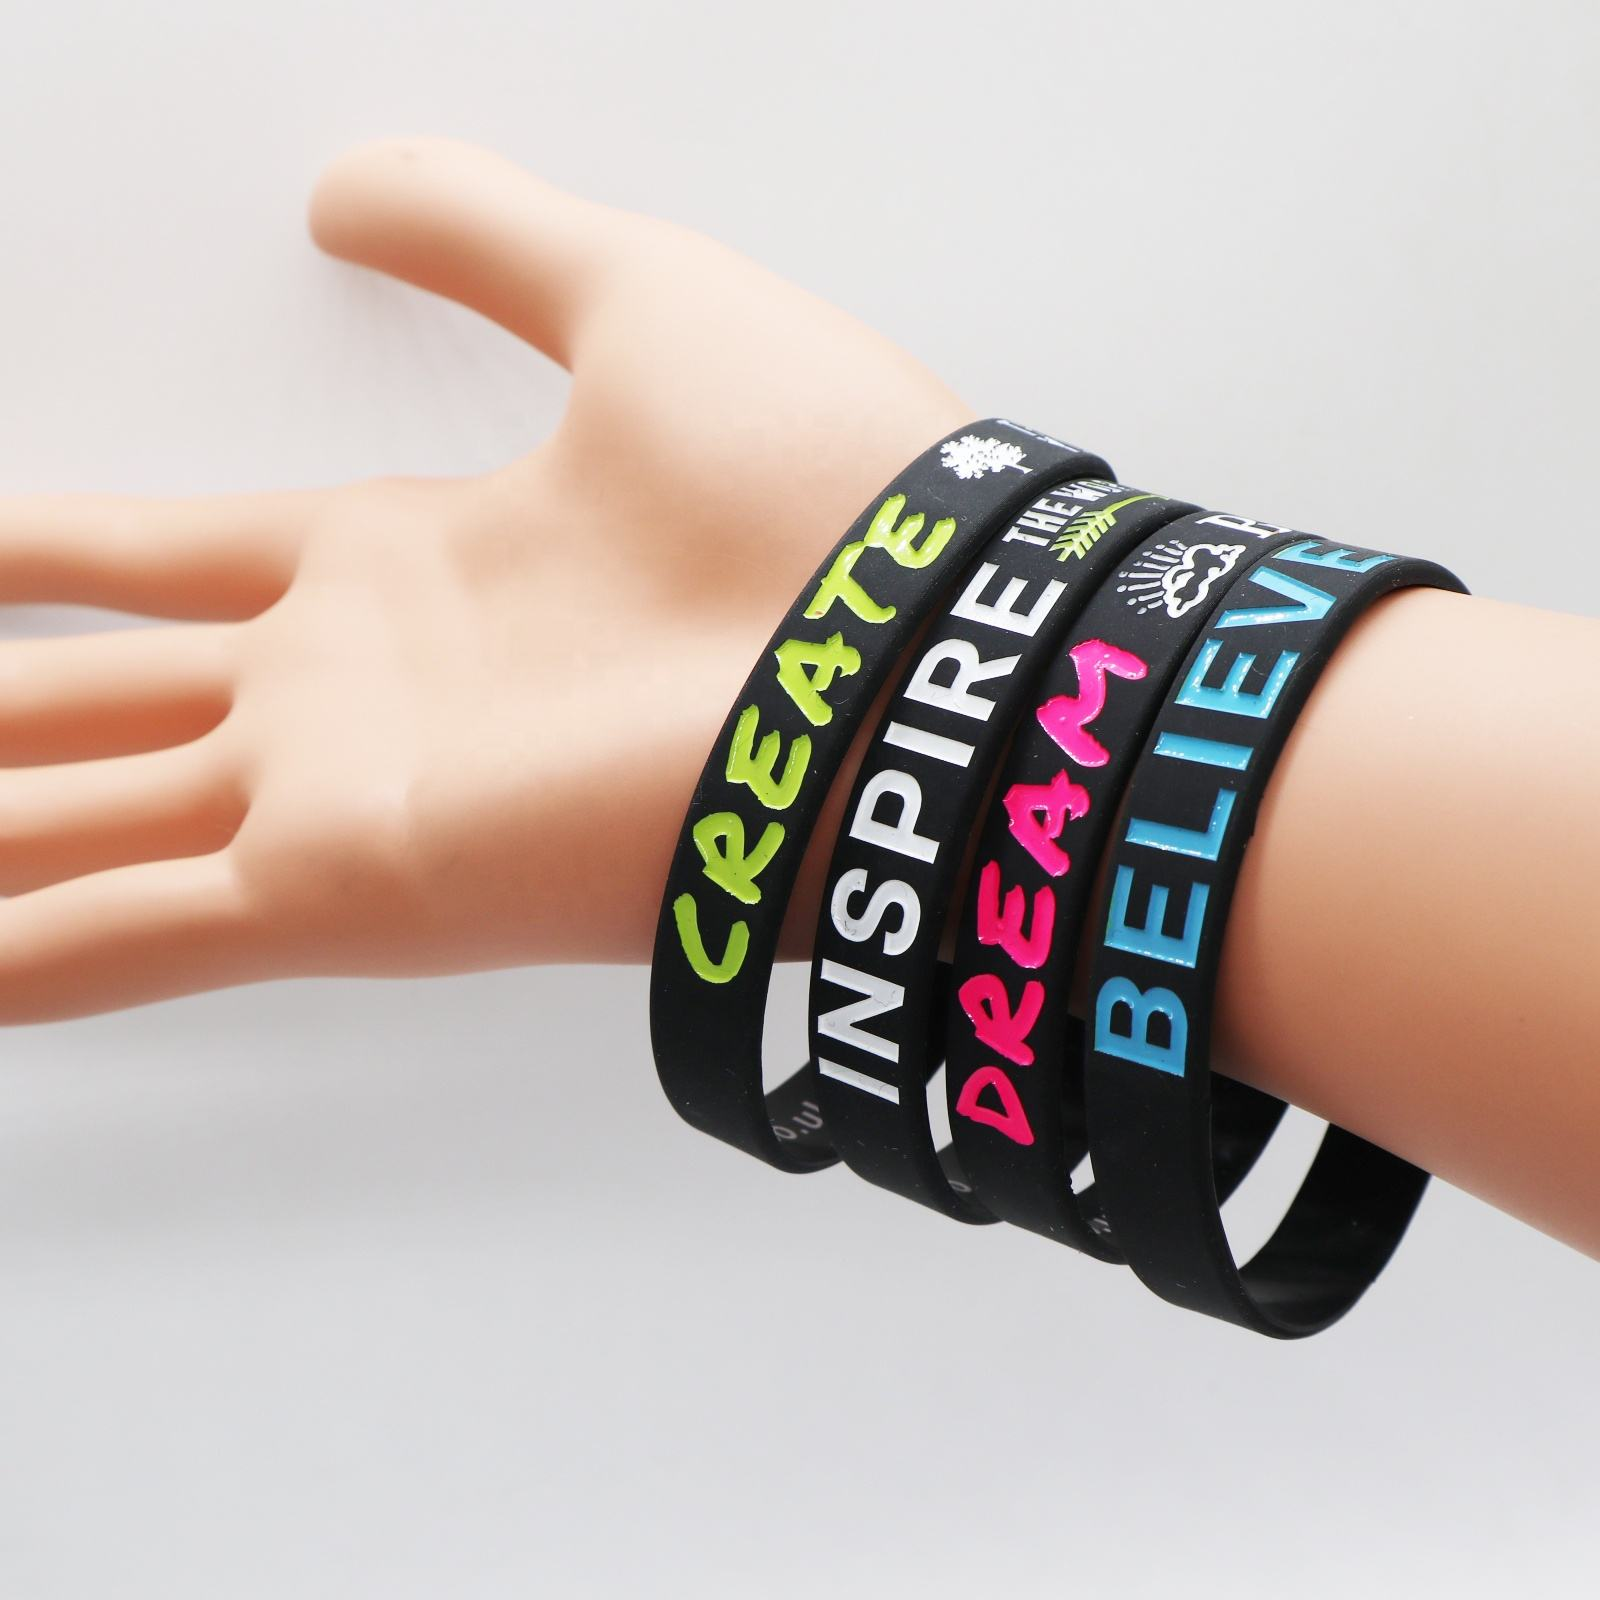 2020 Top sellers amazon Custom motivational wristband rubber wristband silicone bracelet for friends